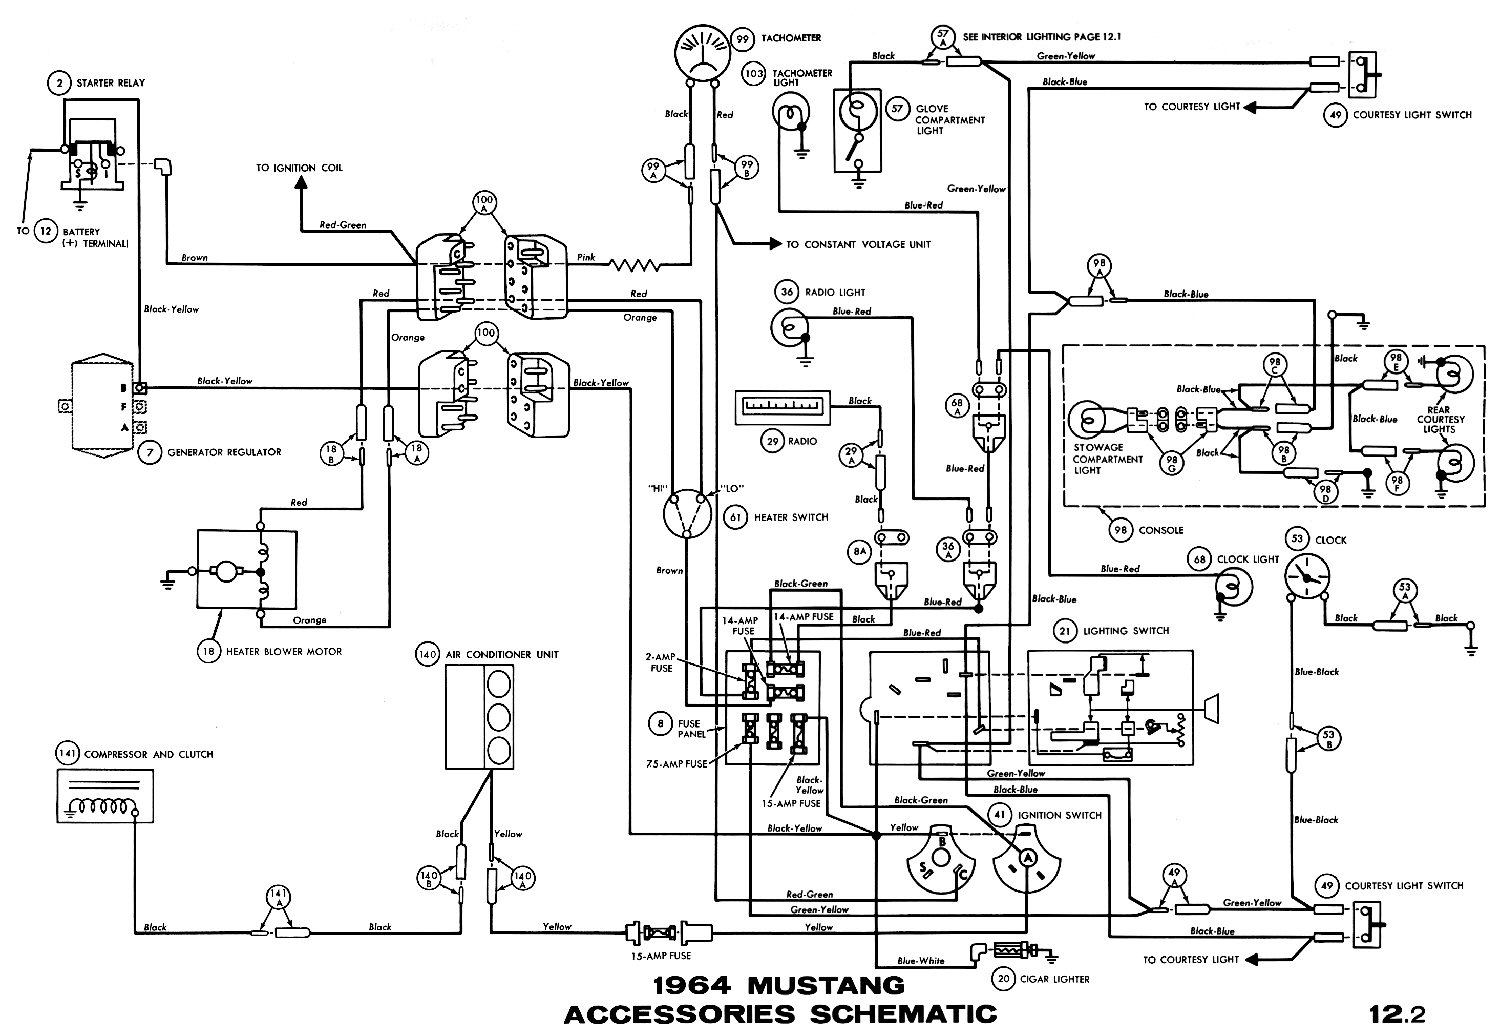 1964m 1964 mustang wiring diagrams average joe restoration ford mustang wiring diagram at arjmand.co